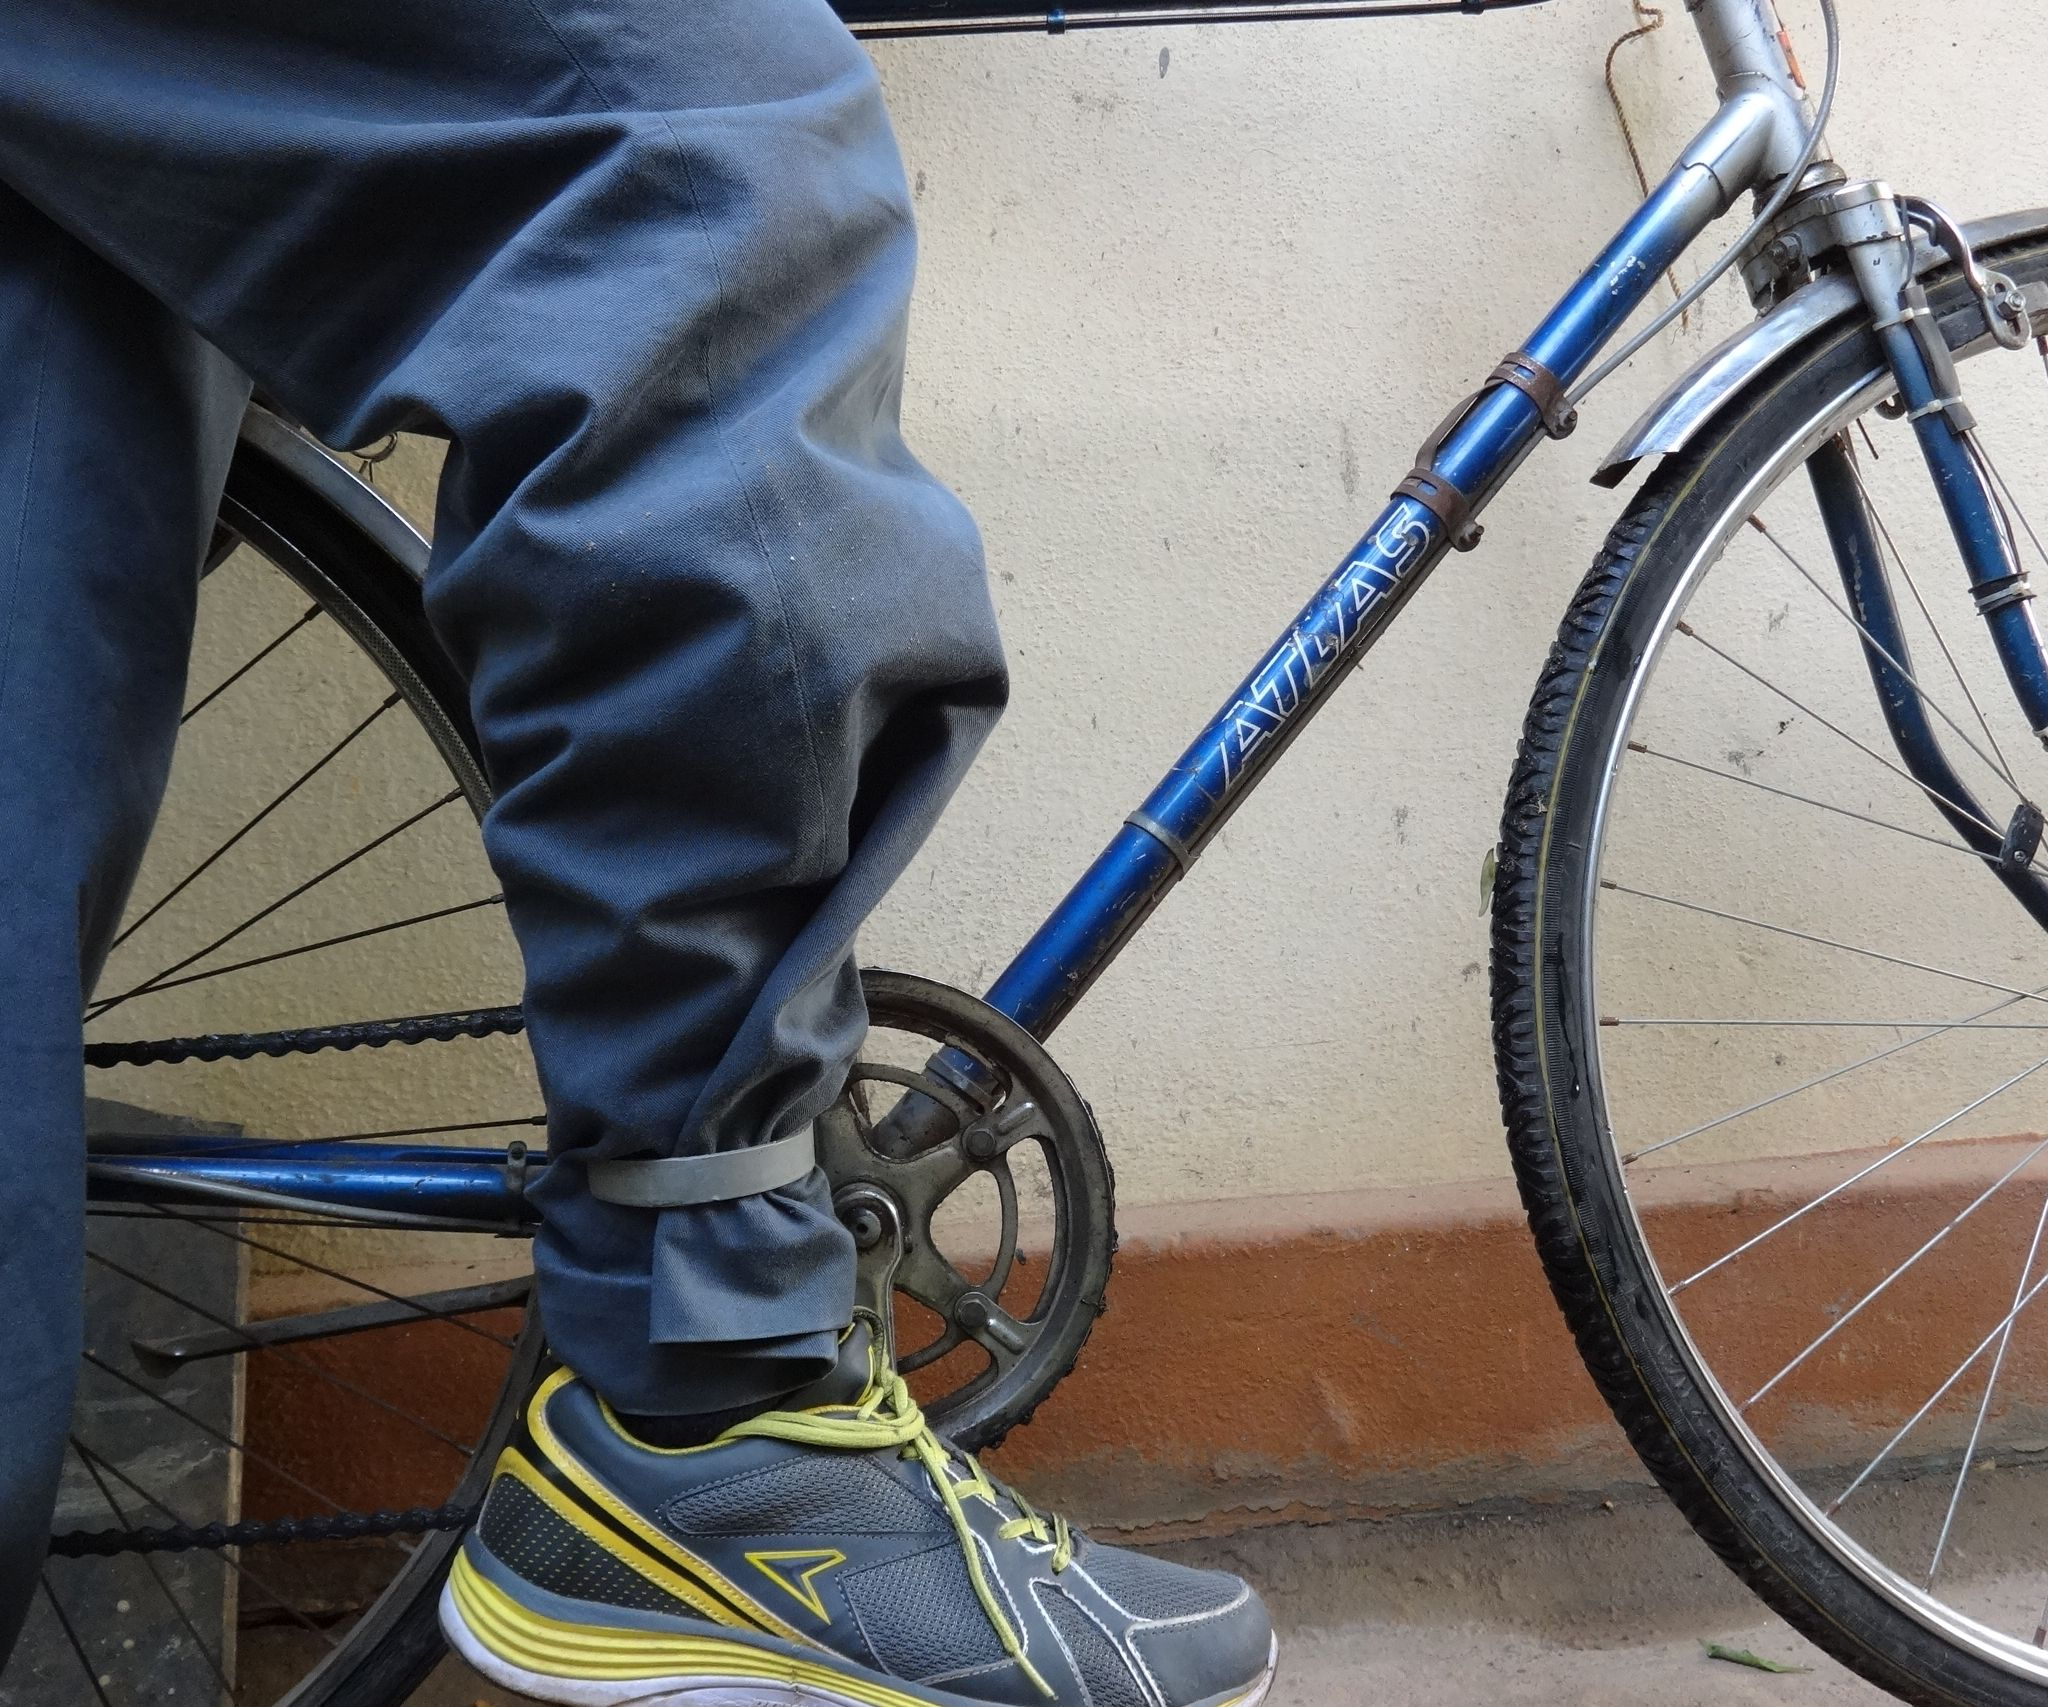 Protect your pants from the Bicycle chain Bike Trouser Clips Steel Leg Bands